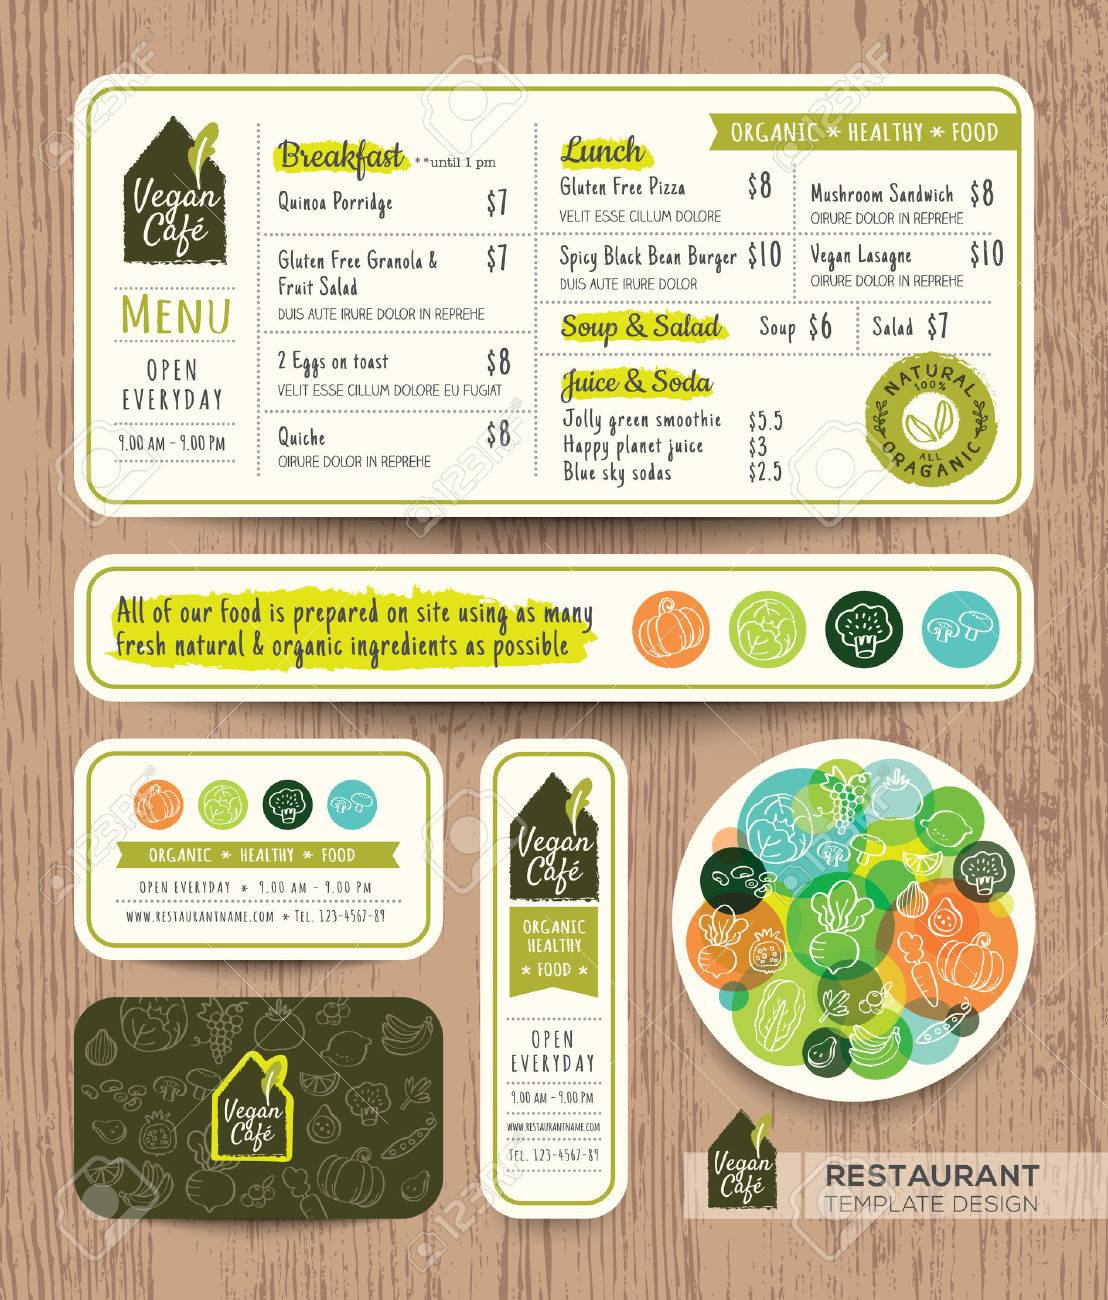 Vegetarian And Vegan Healthy Restaurant Cafe Set Menu Graphic Royalty Free Cliparts Vectors And Stock Illustration Image 52125849